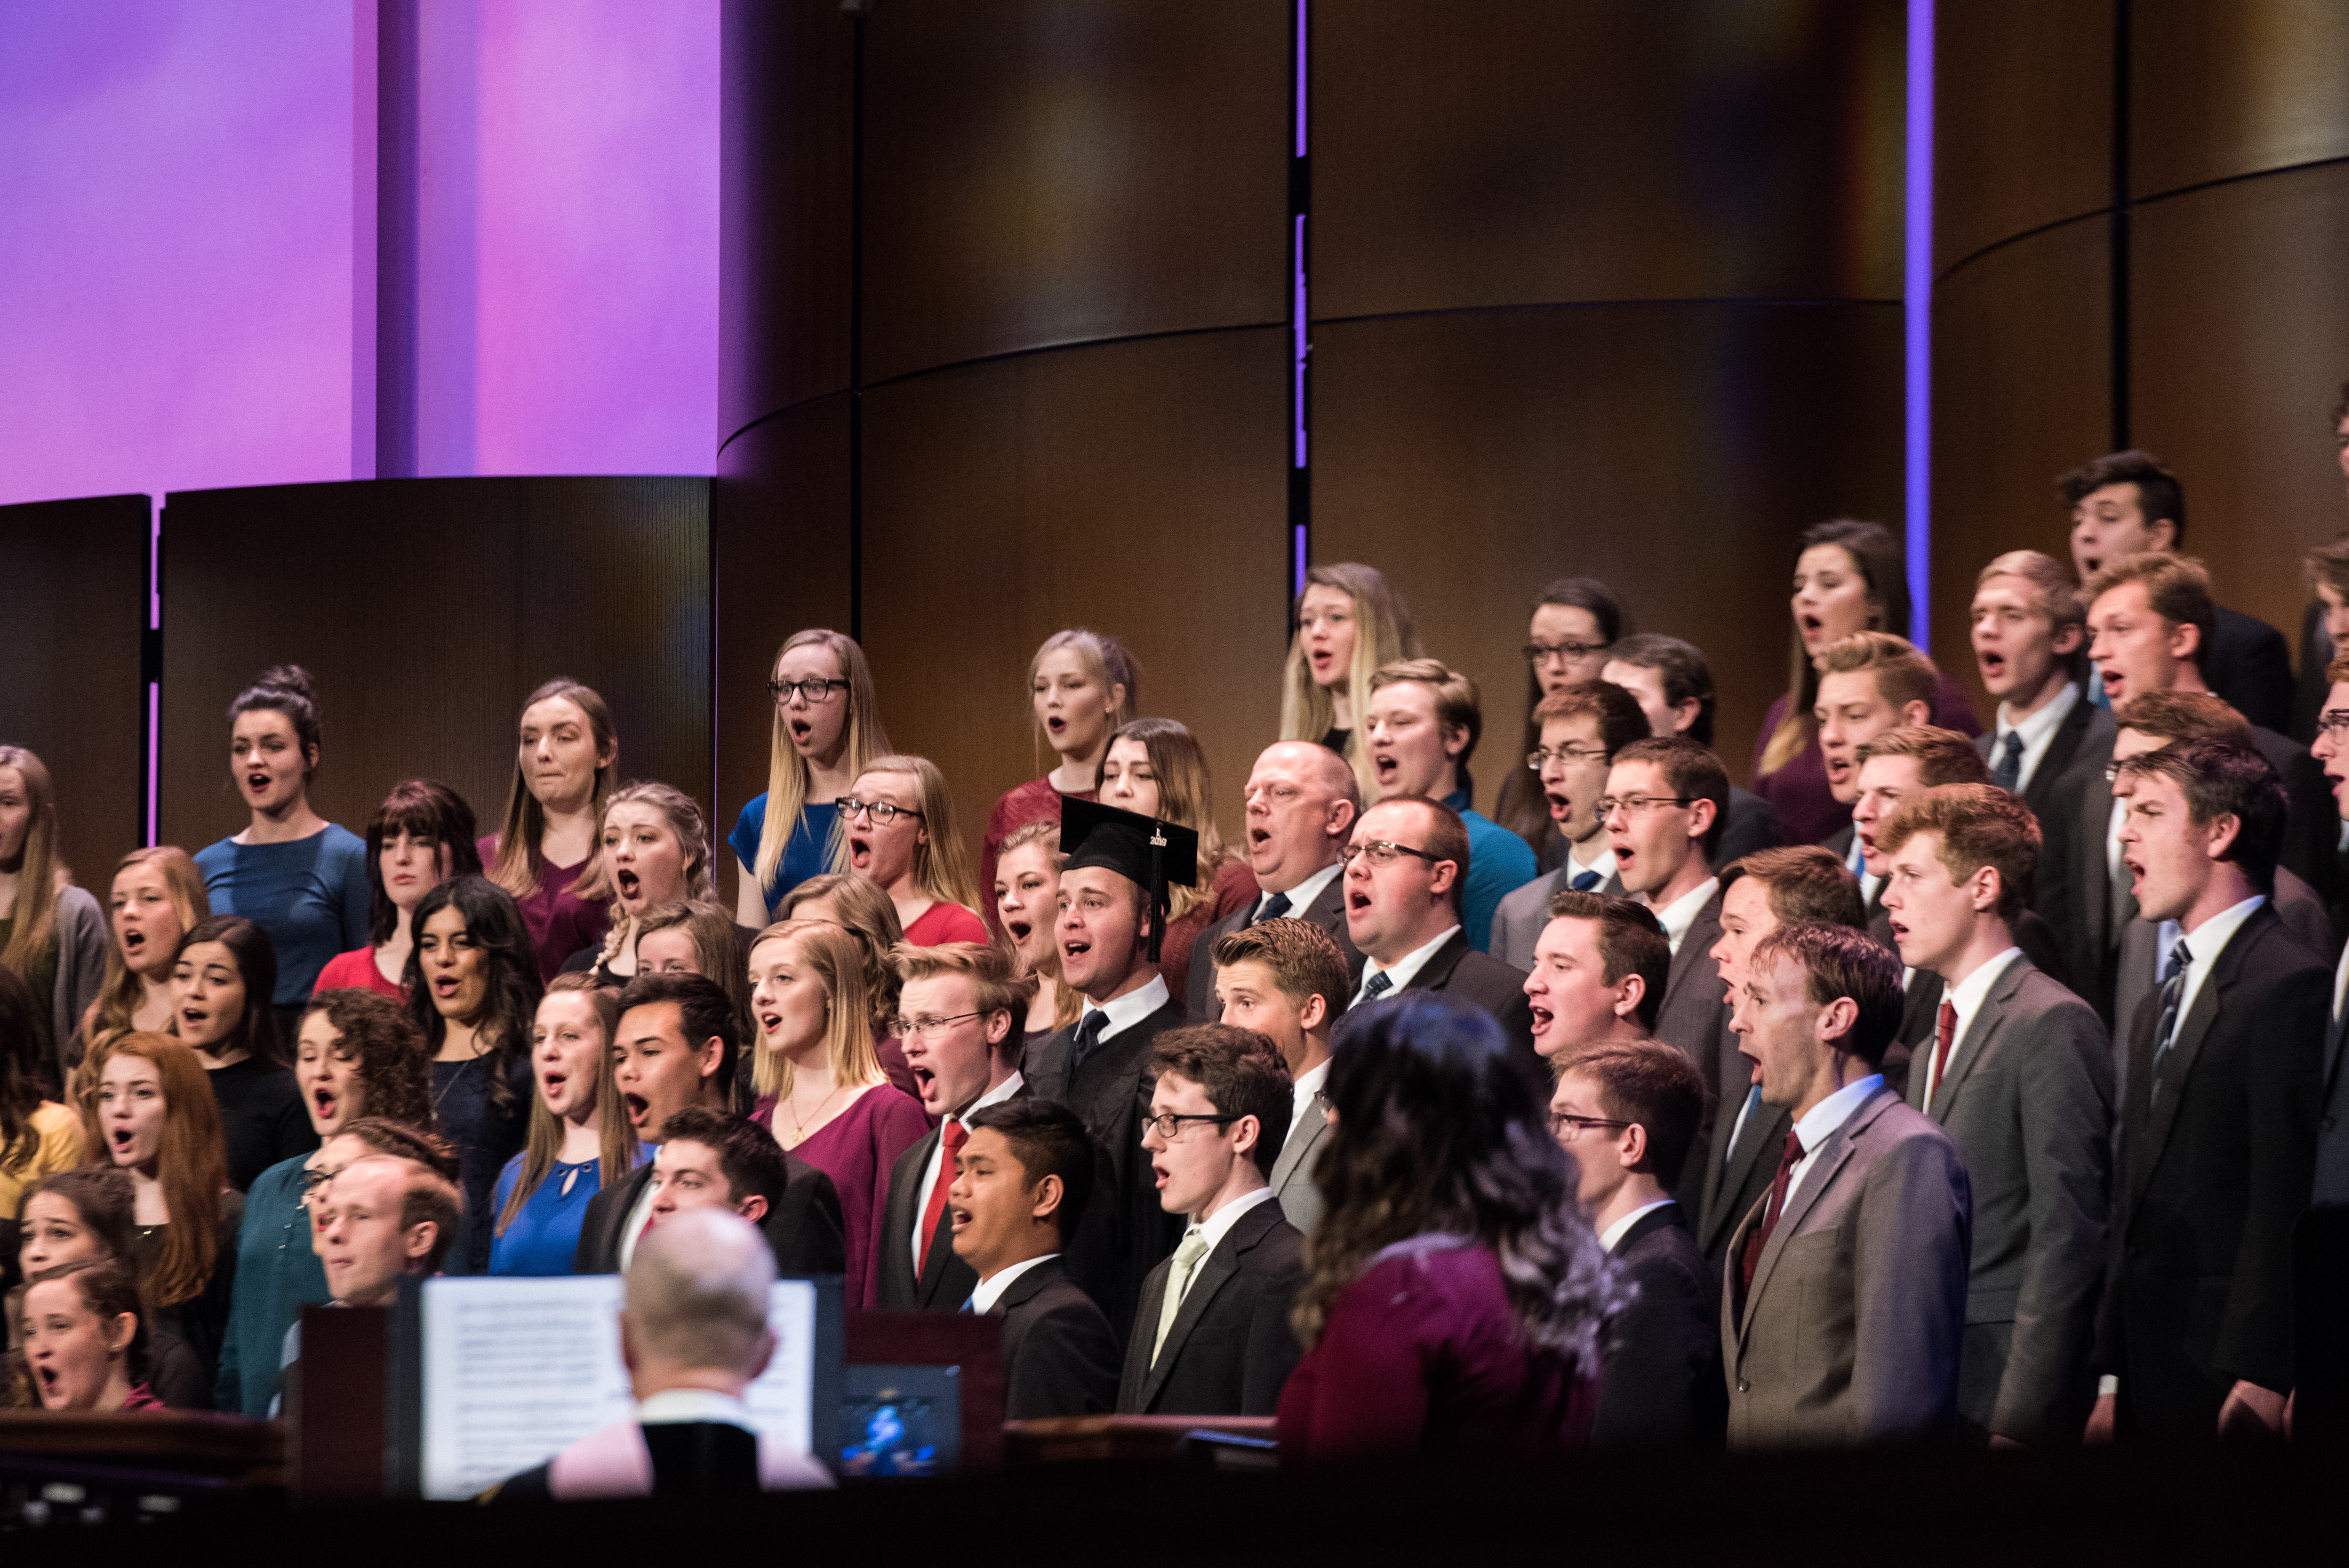 BYU-Idaho Choir performs during commencement exercises on April 12, 2019.